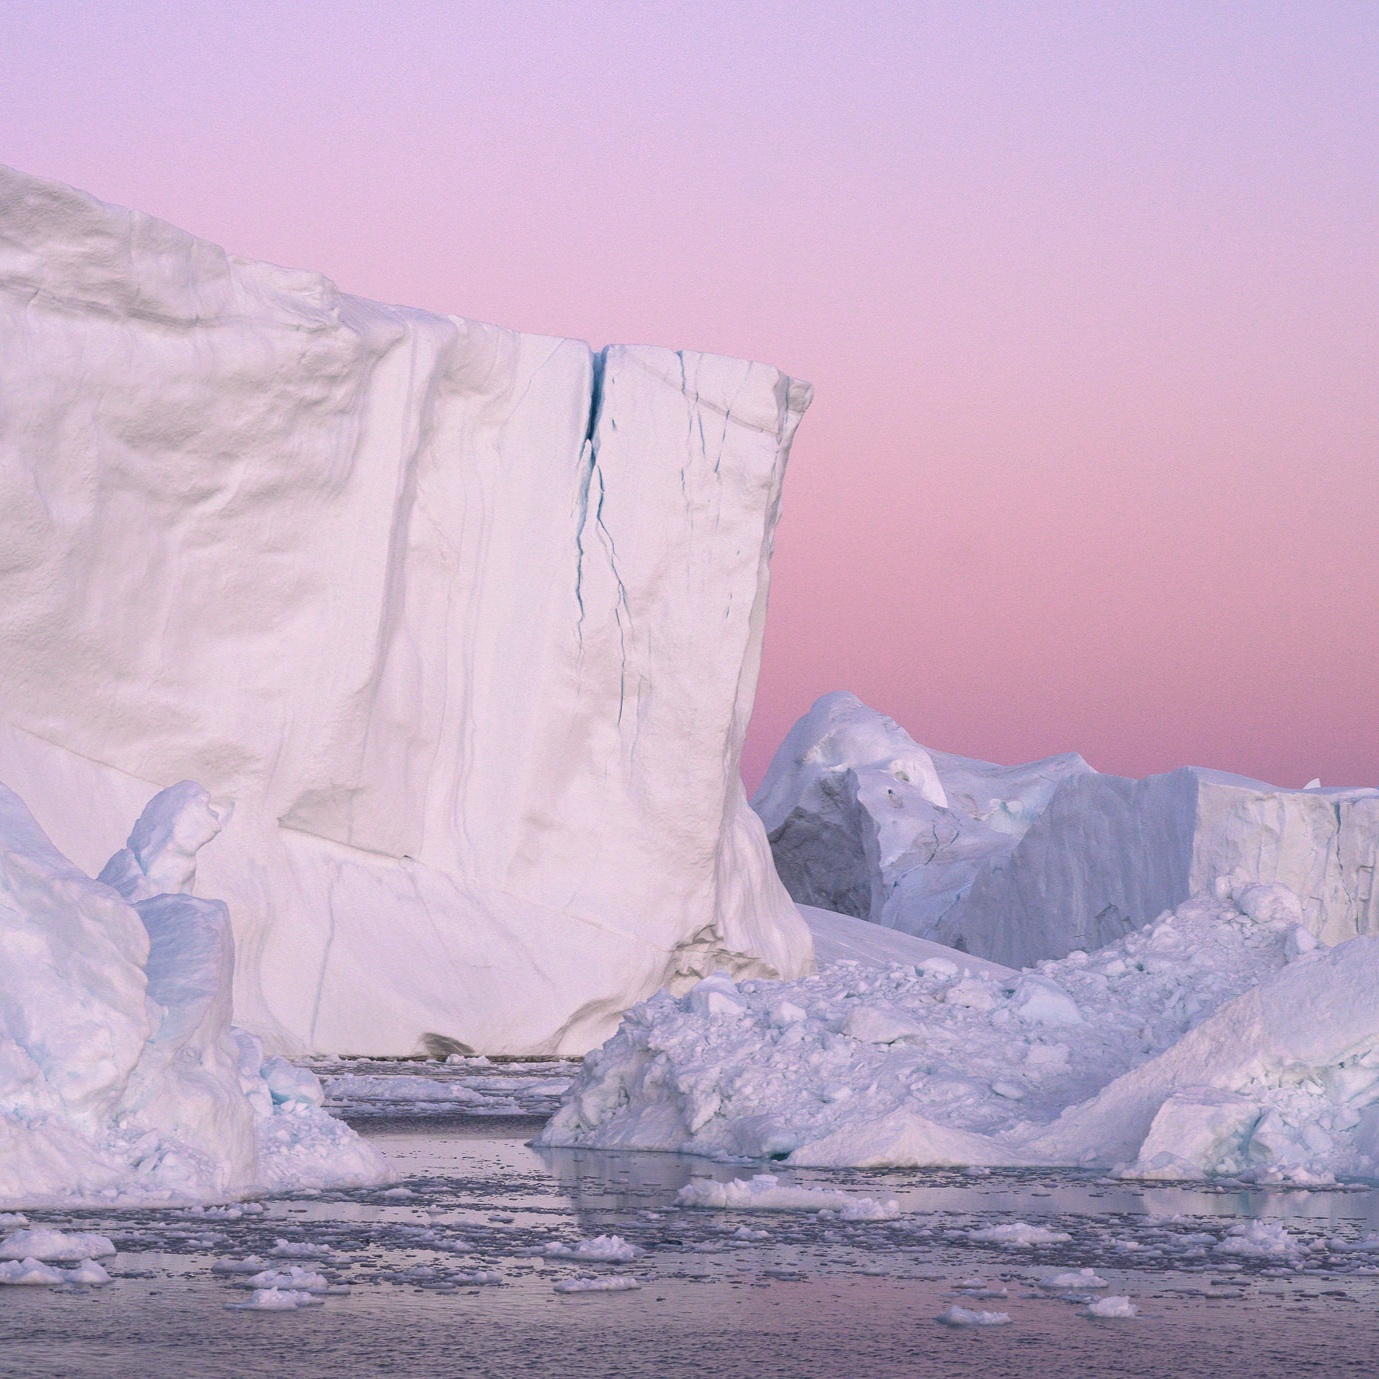 AMONG GIANTS, GREENLAND - 27th Sept - 3rd Oct 2020